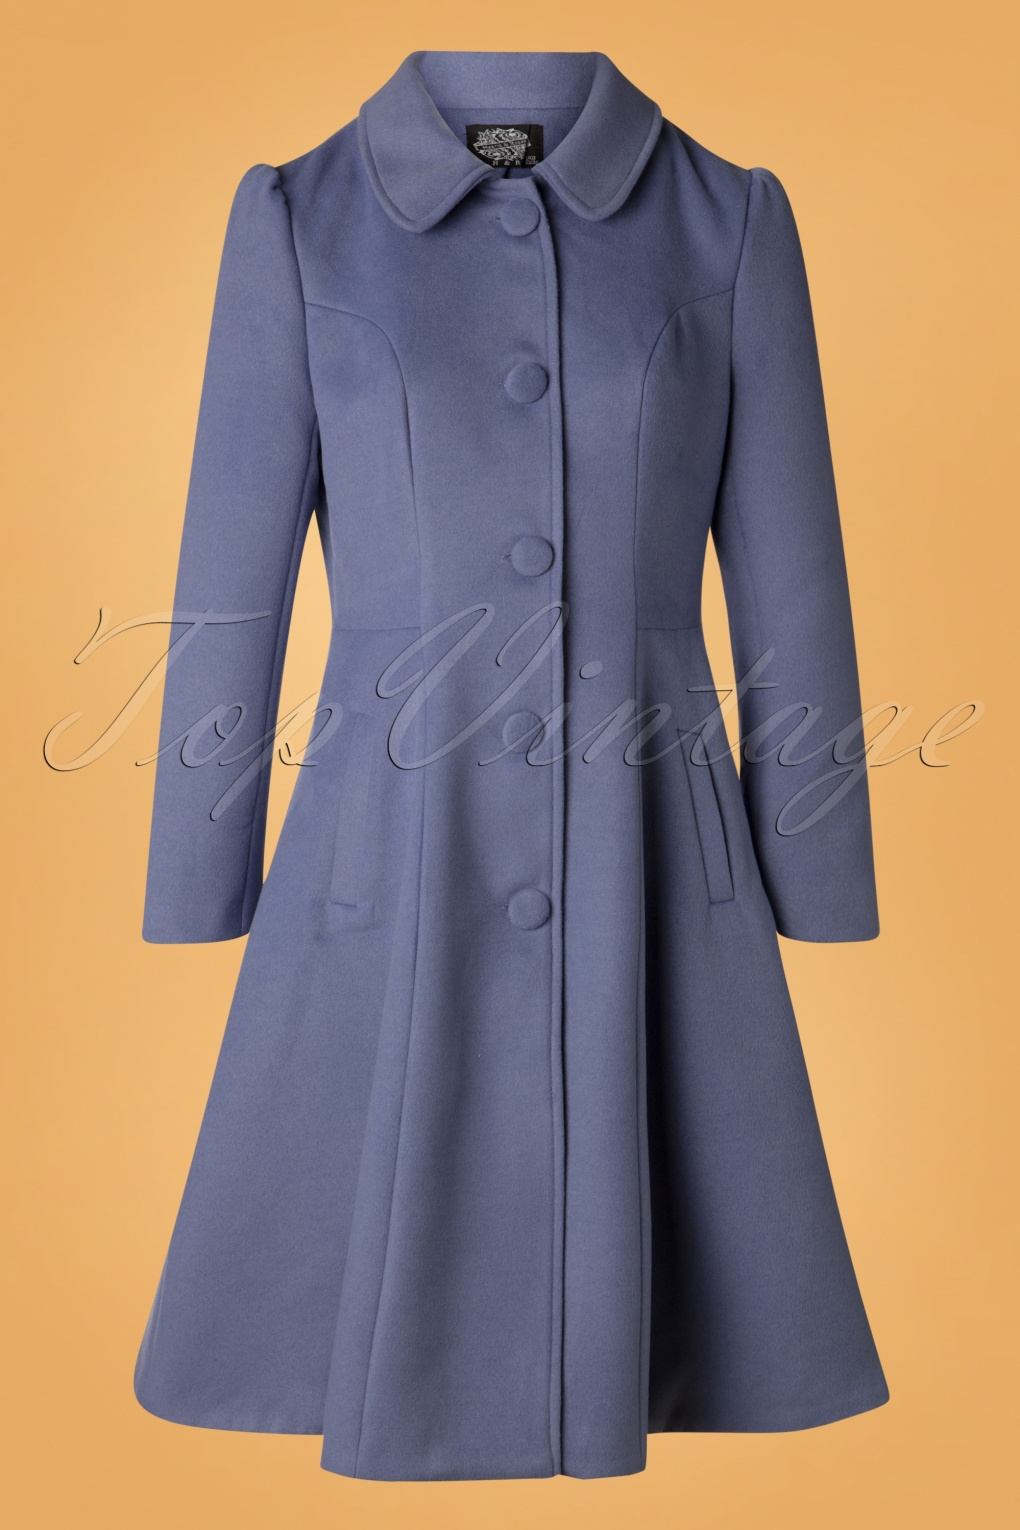 Vintage Coats & Jackets | Retro Coats and Jackets 50s Esme Swing Coat in Blue £97.90 AT vintagedancer.com